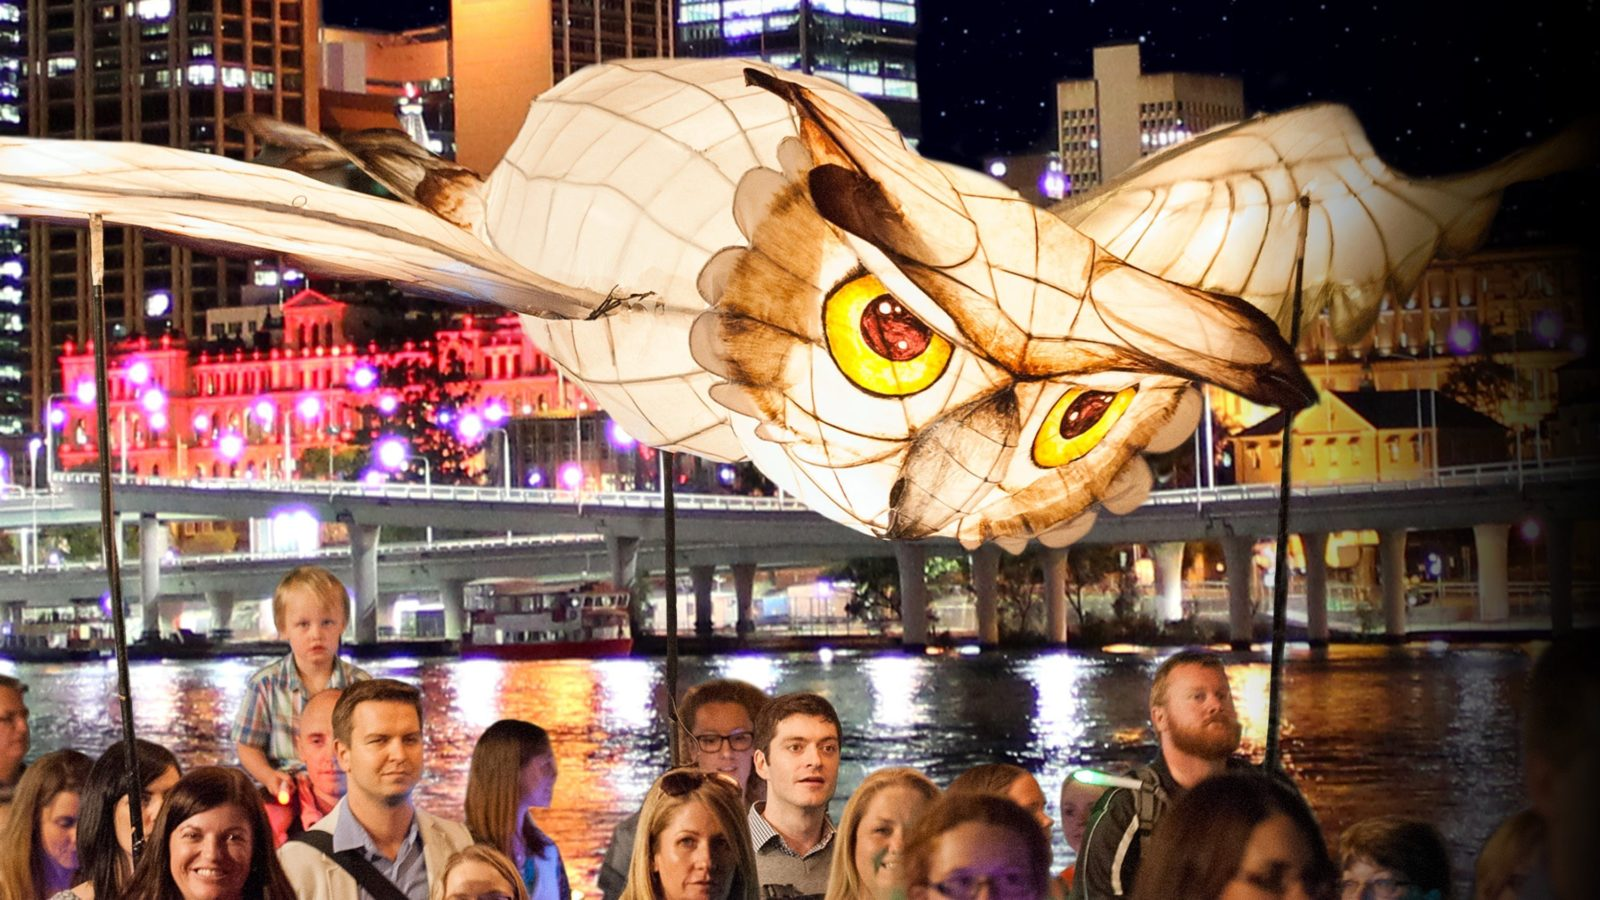 Large owl lantern carried by crowd with Brisbane skyline in the background.